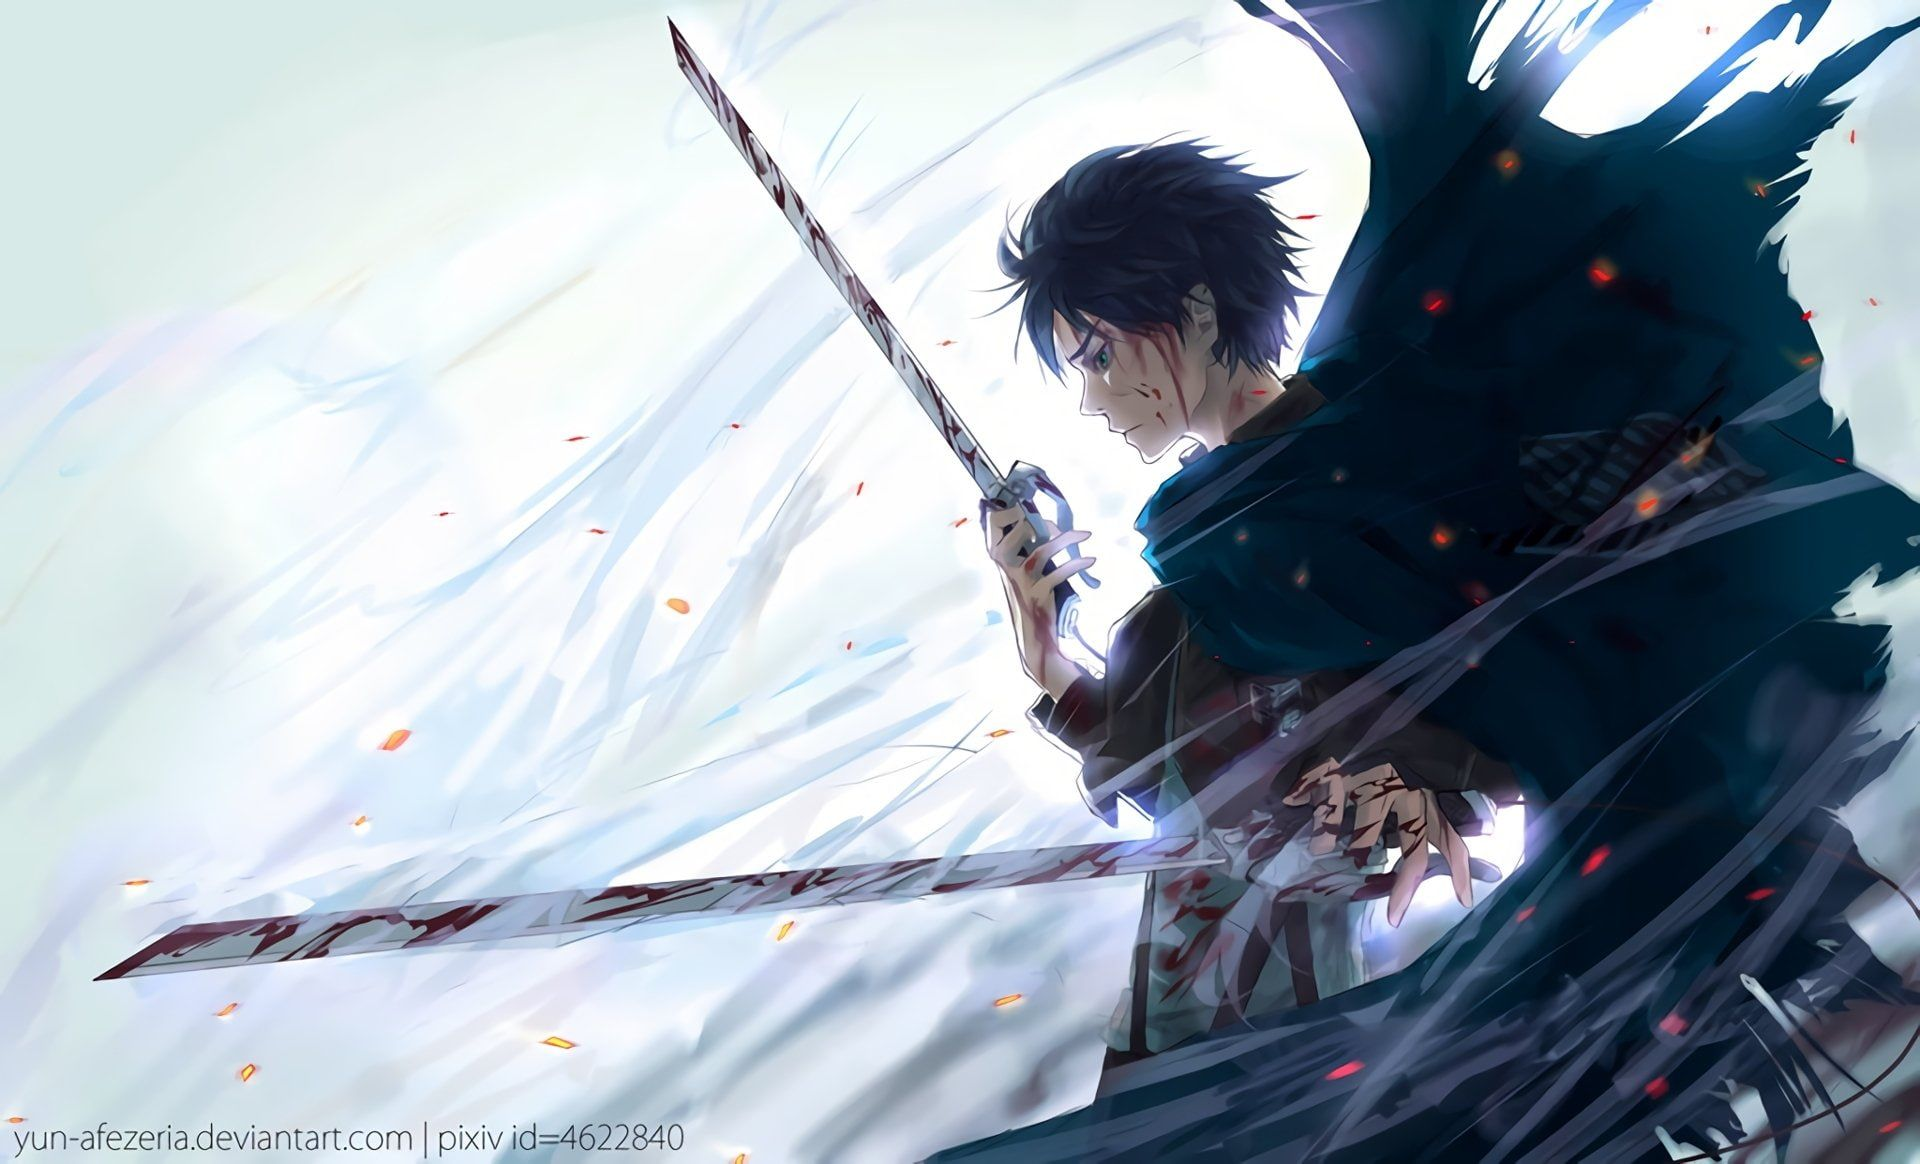 Black Haired Male Anime Character Holding Two Swords Illustratio Anime Attack On Titan Attack On Titan Eren Yeager Shin In 2021 Anime Attack On Titan Anime Characters